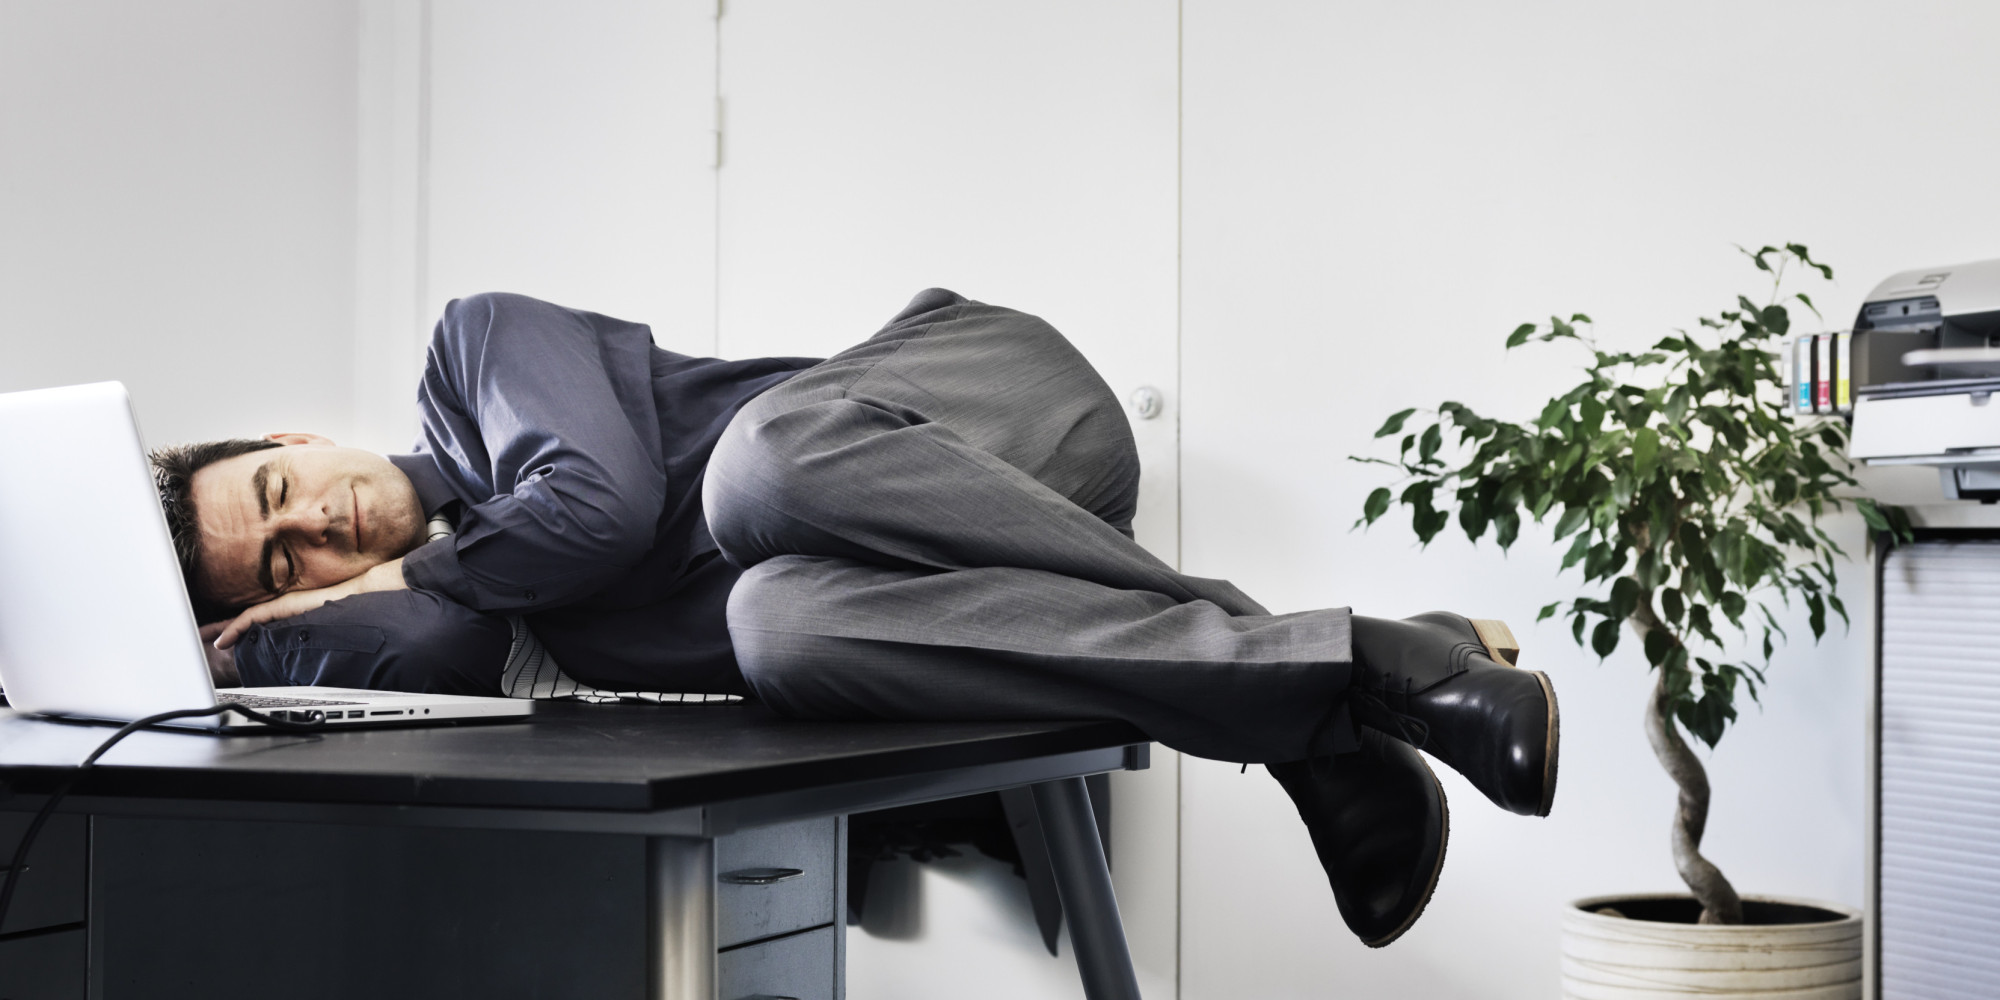 Businessman asleep on his office desk